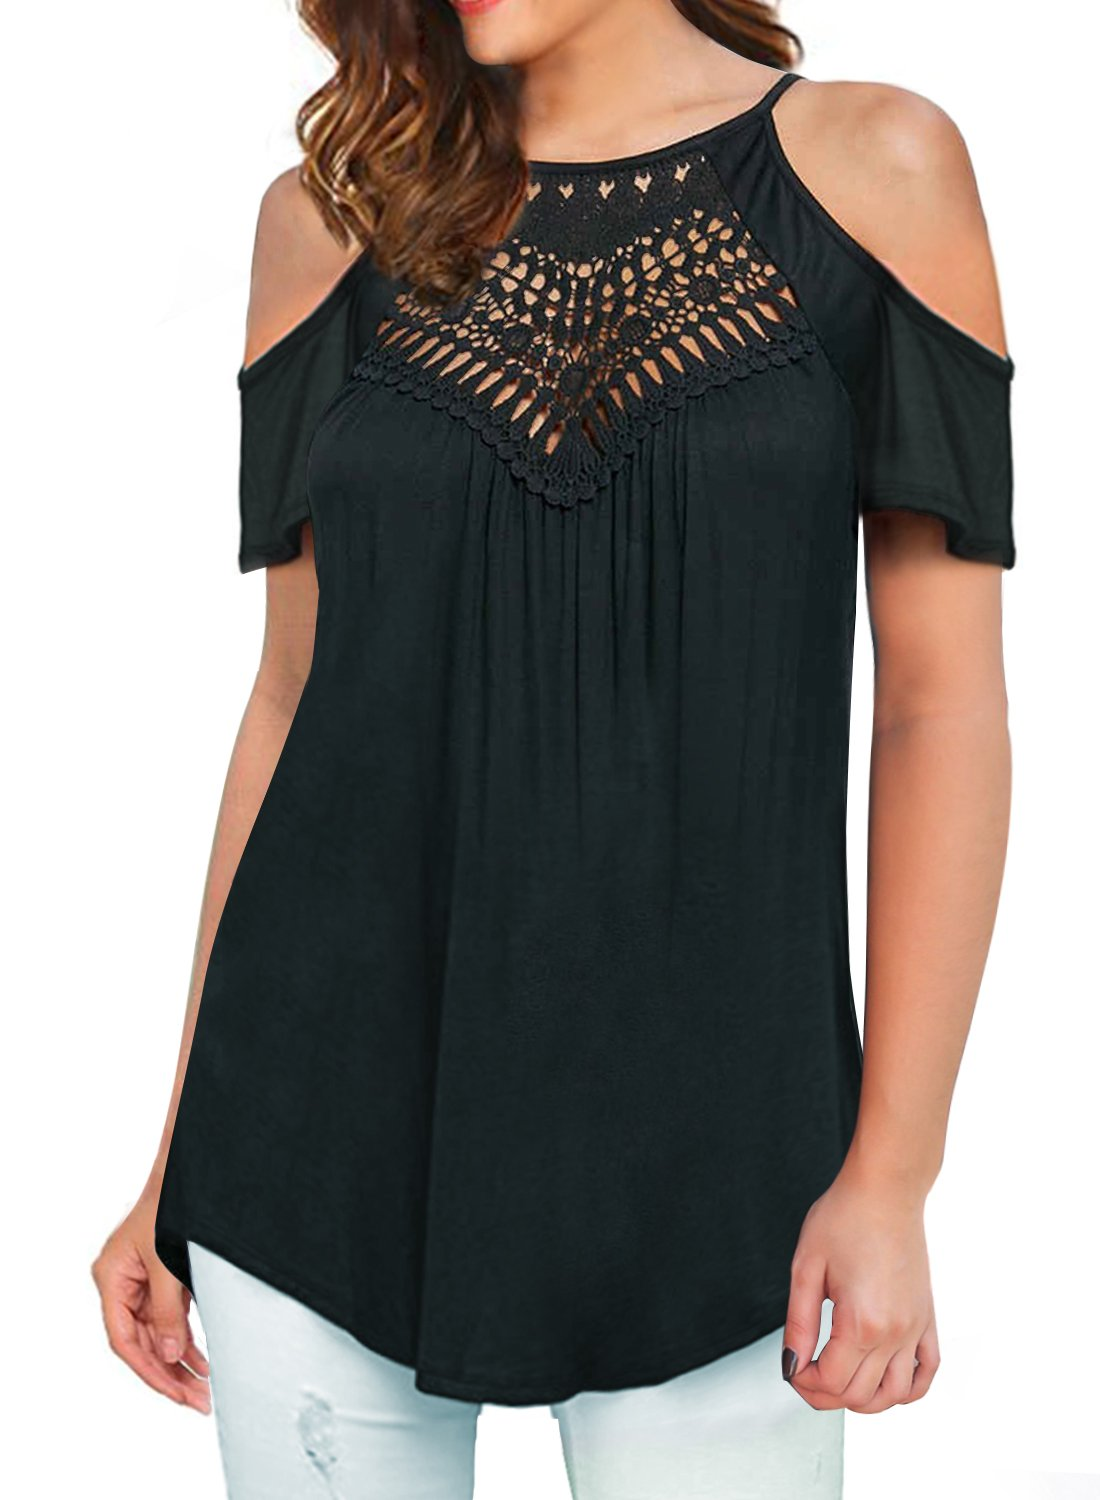 MIHOLL Women's Casual Tops Lace Off Shoulder Short Sleeve Loose Blouse Shirts (XX-Large, A1- Black)